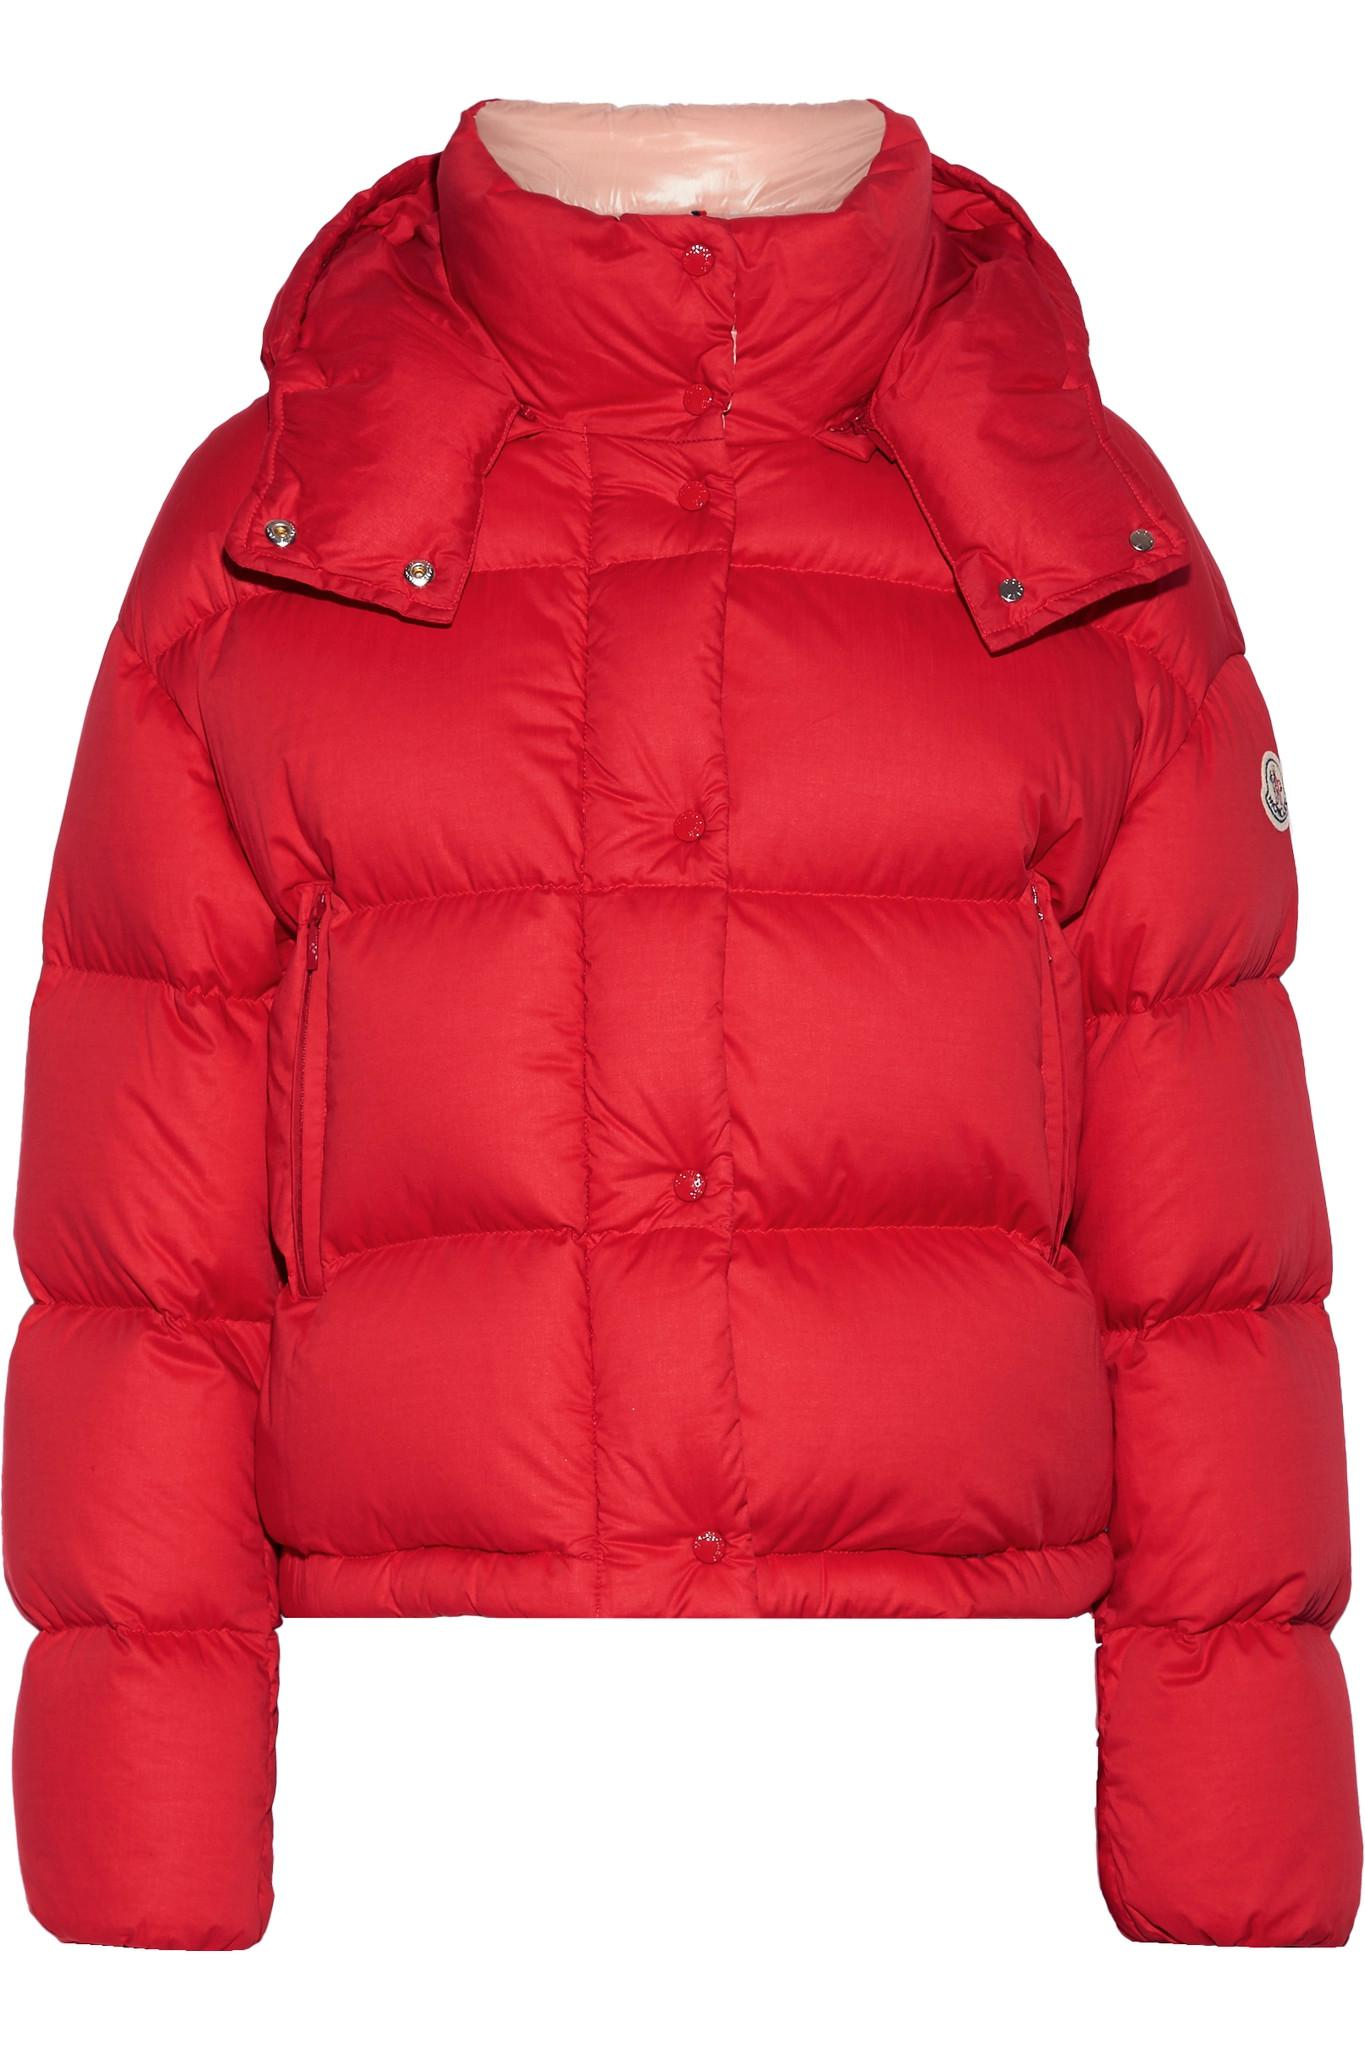 Le Meilleur Lyst Moncler Paeonia Quilted Cotton Canvas Down Coat In Red Ce Mois Ci